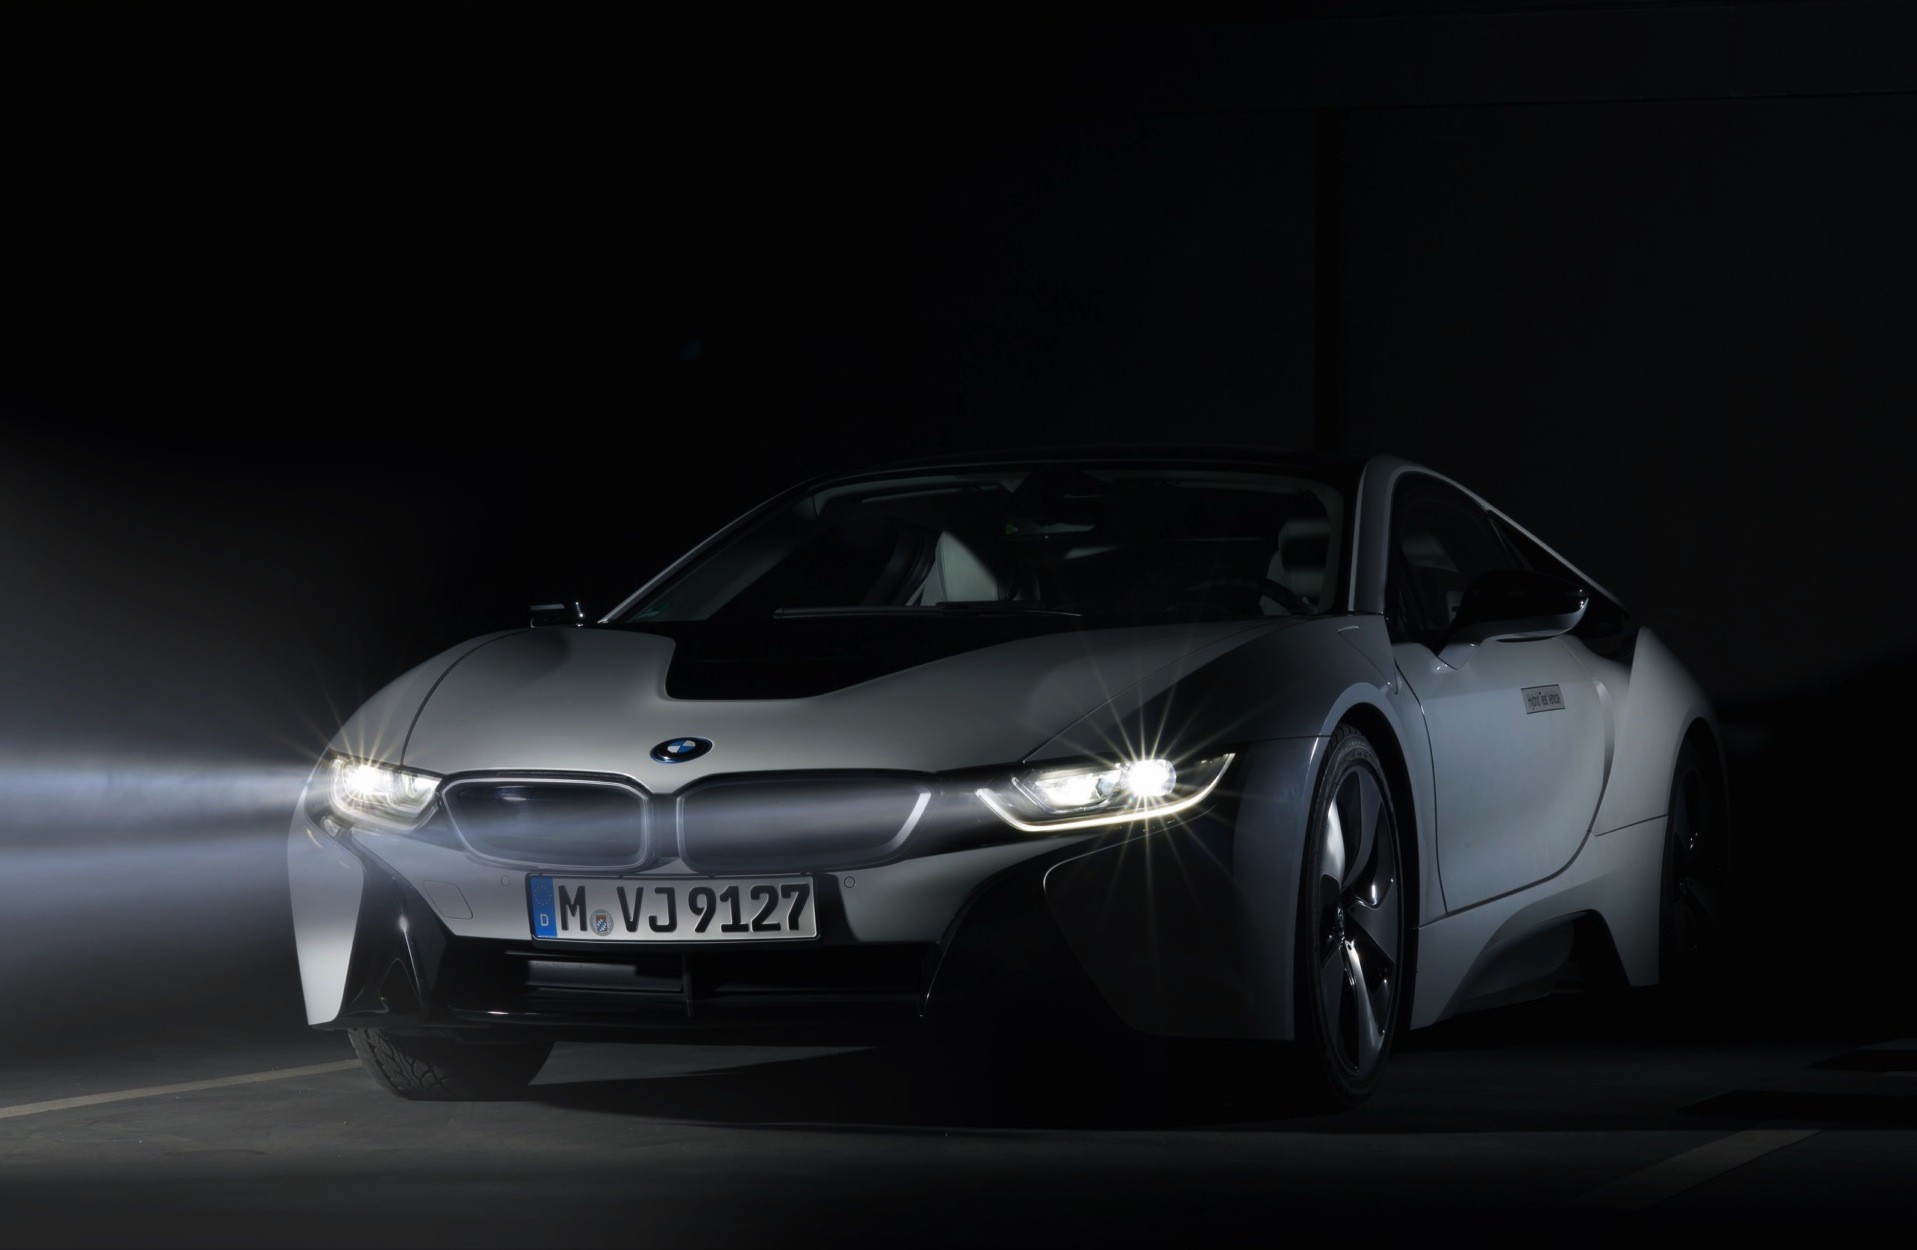 BMW i8 laserlicht LED assistent 2014 10